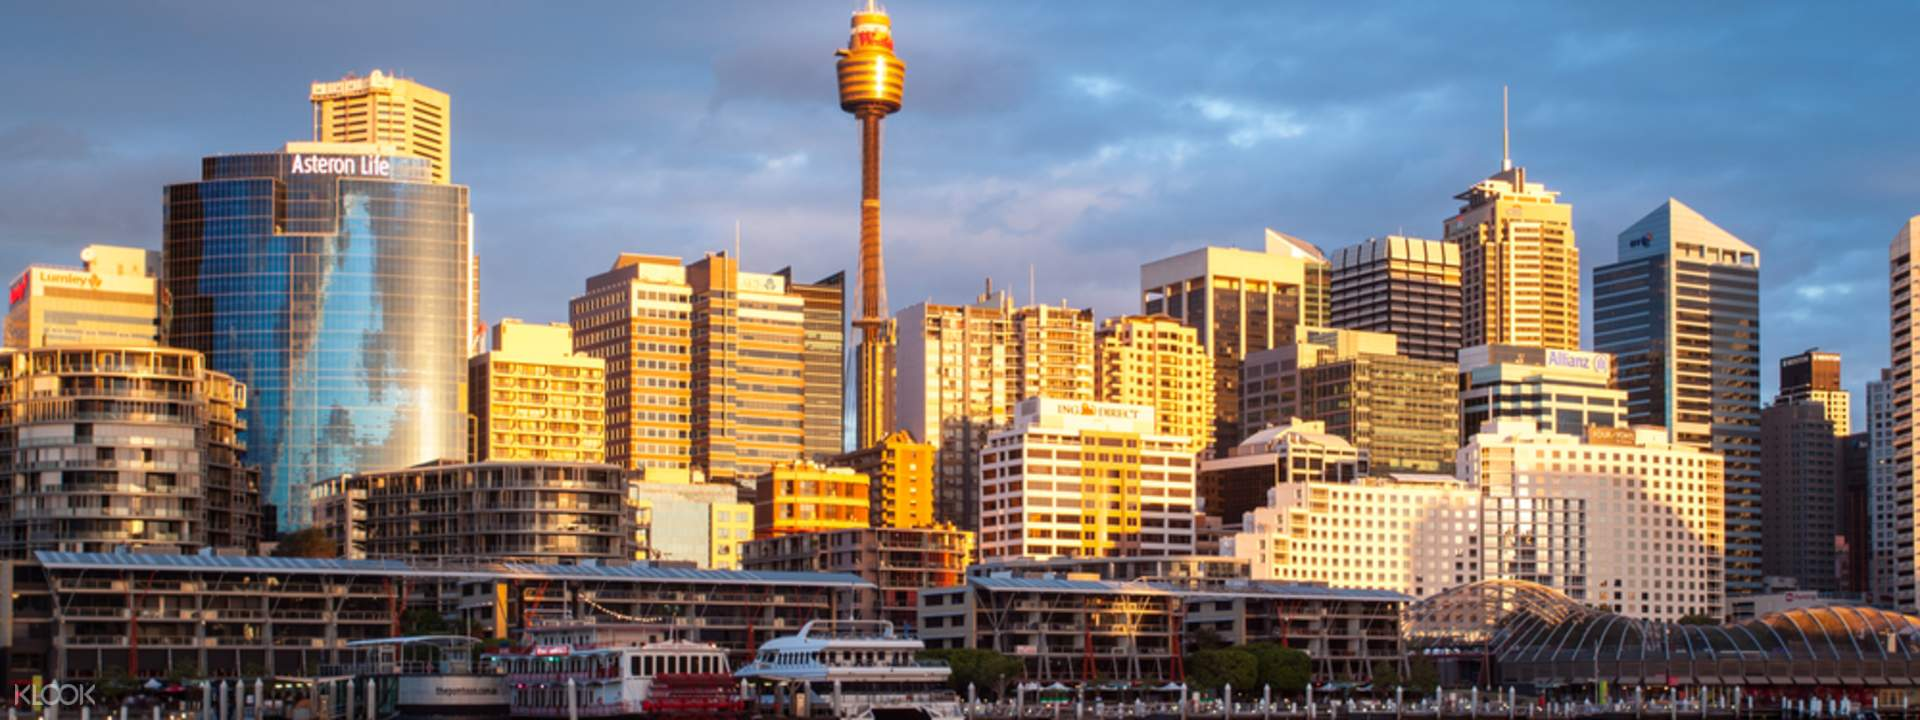 Sydney Tower Eye Discount Tickets Bar Code Direct Entry Klook